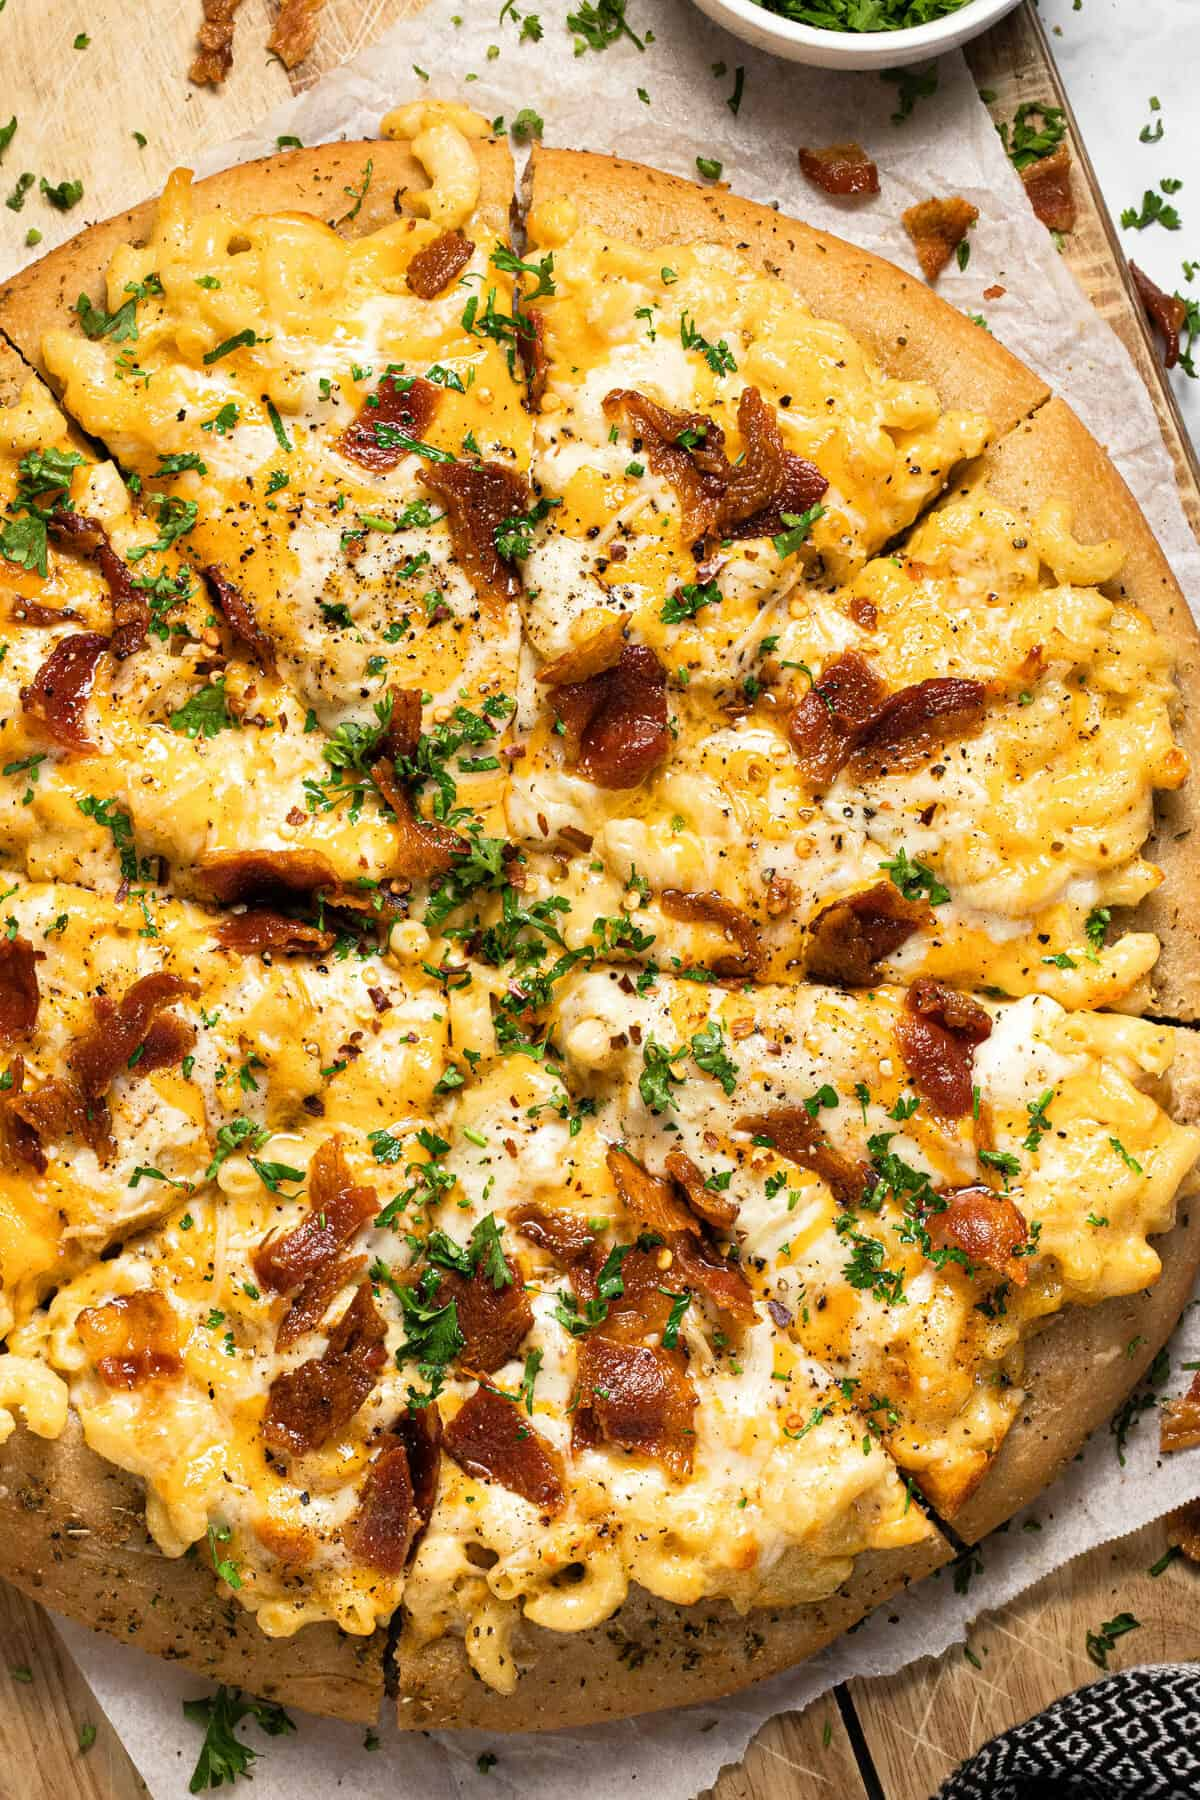 Homemade mac and cheese pizza on a wooden cutting board